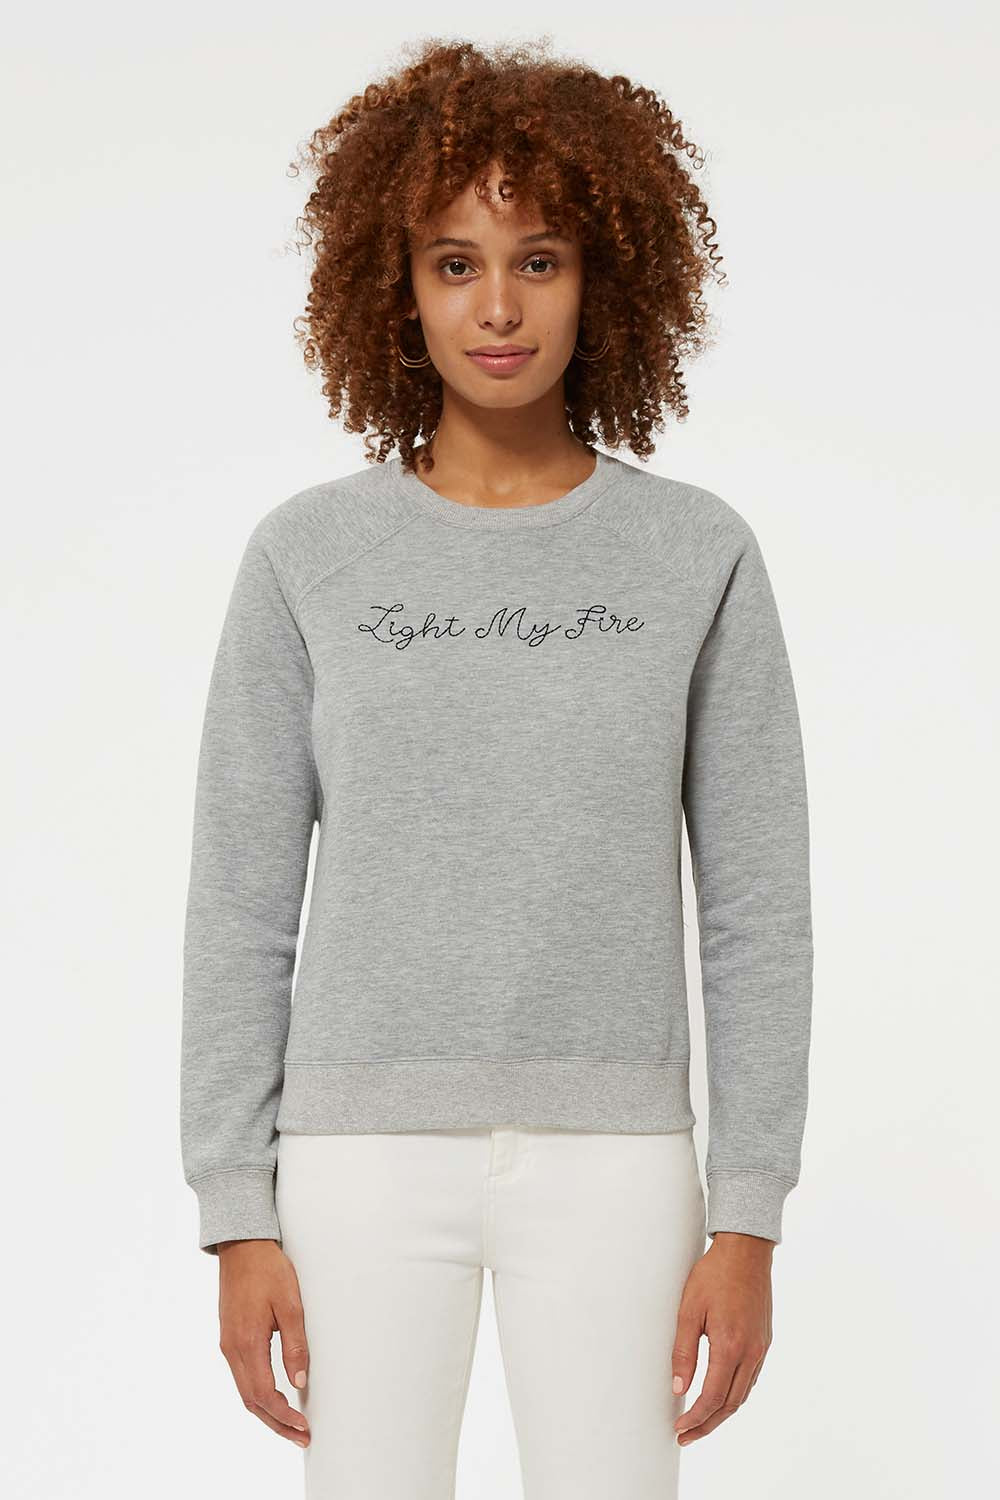 Light My Fire Jennings Sweatshirt